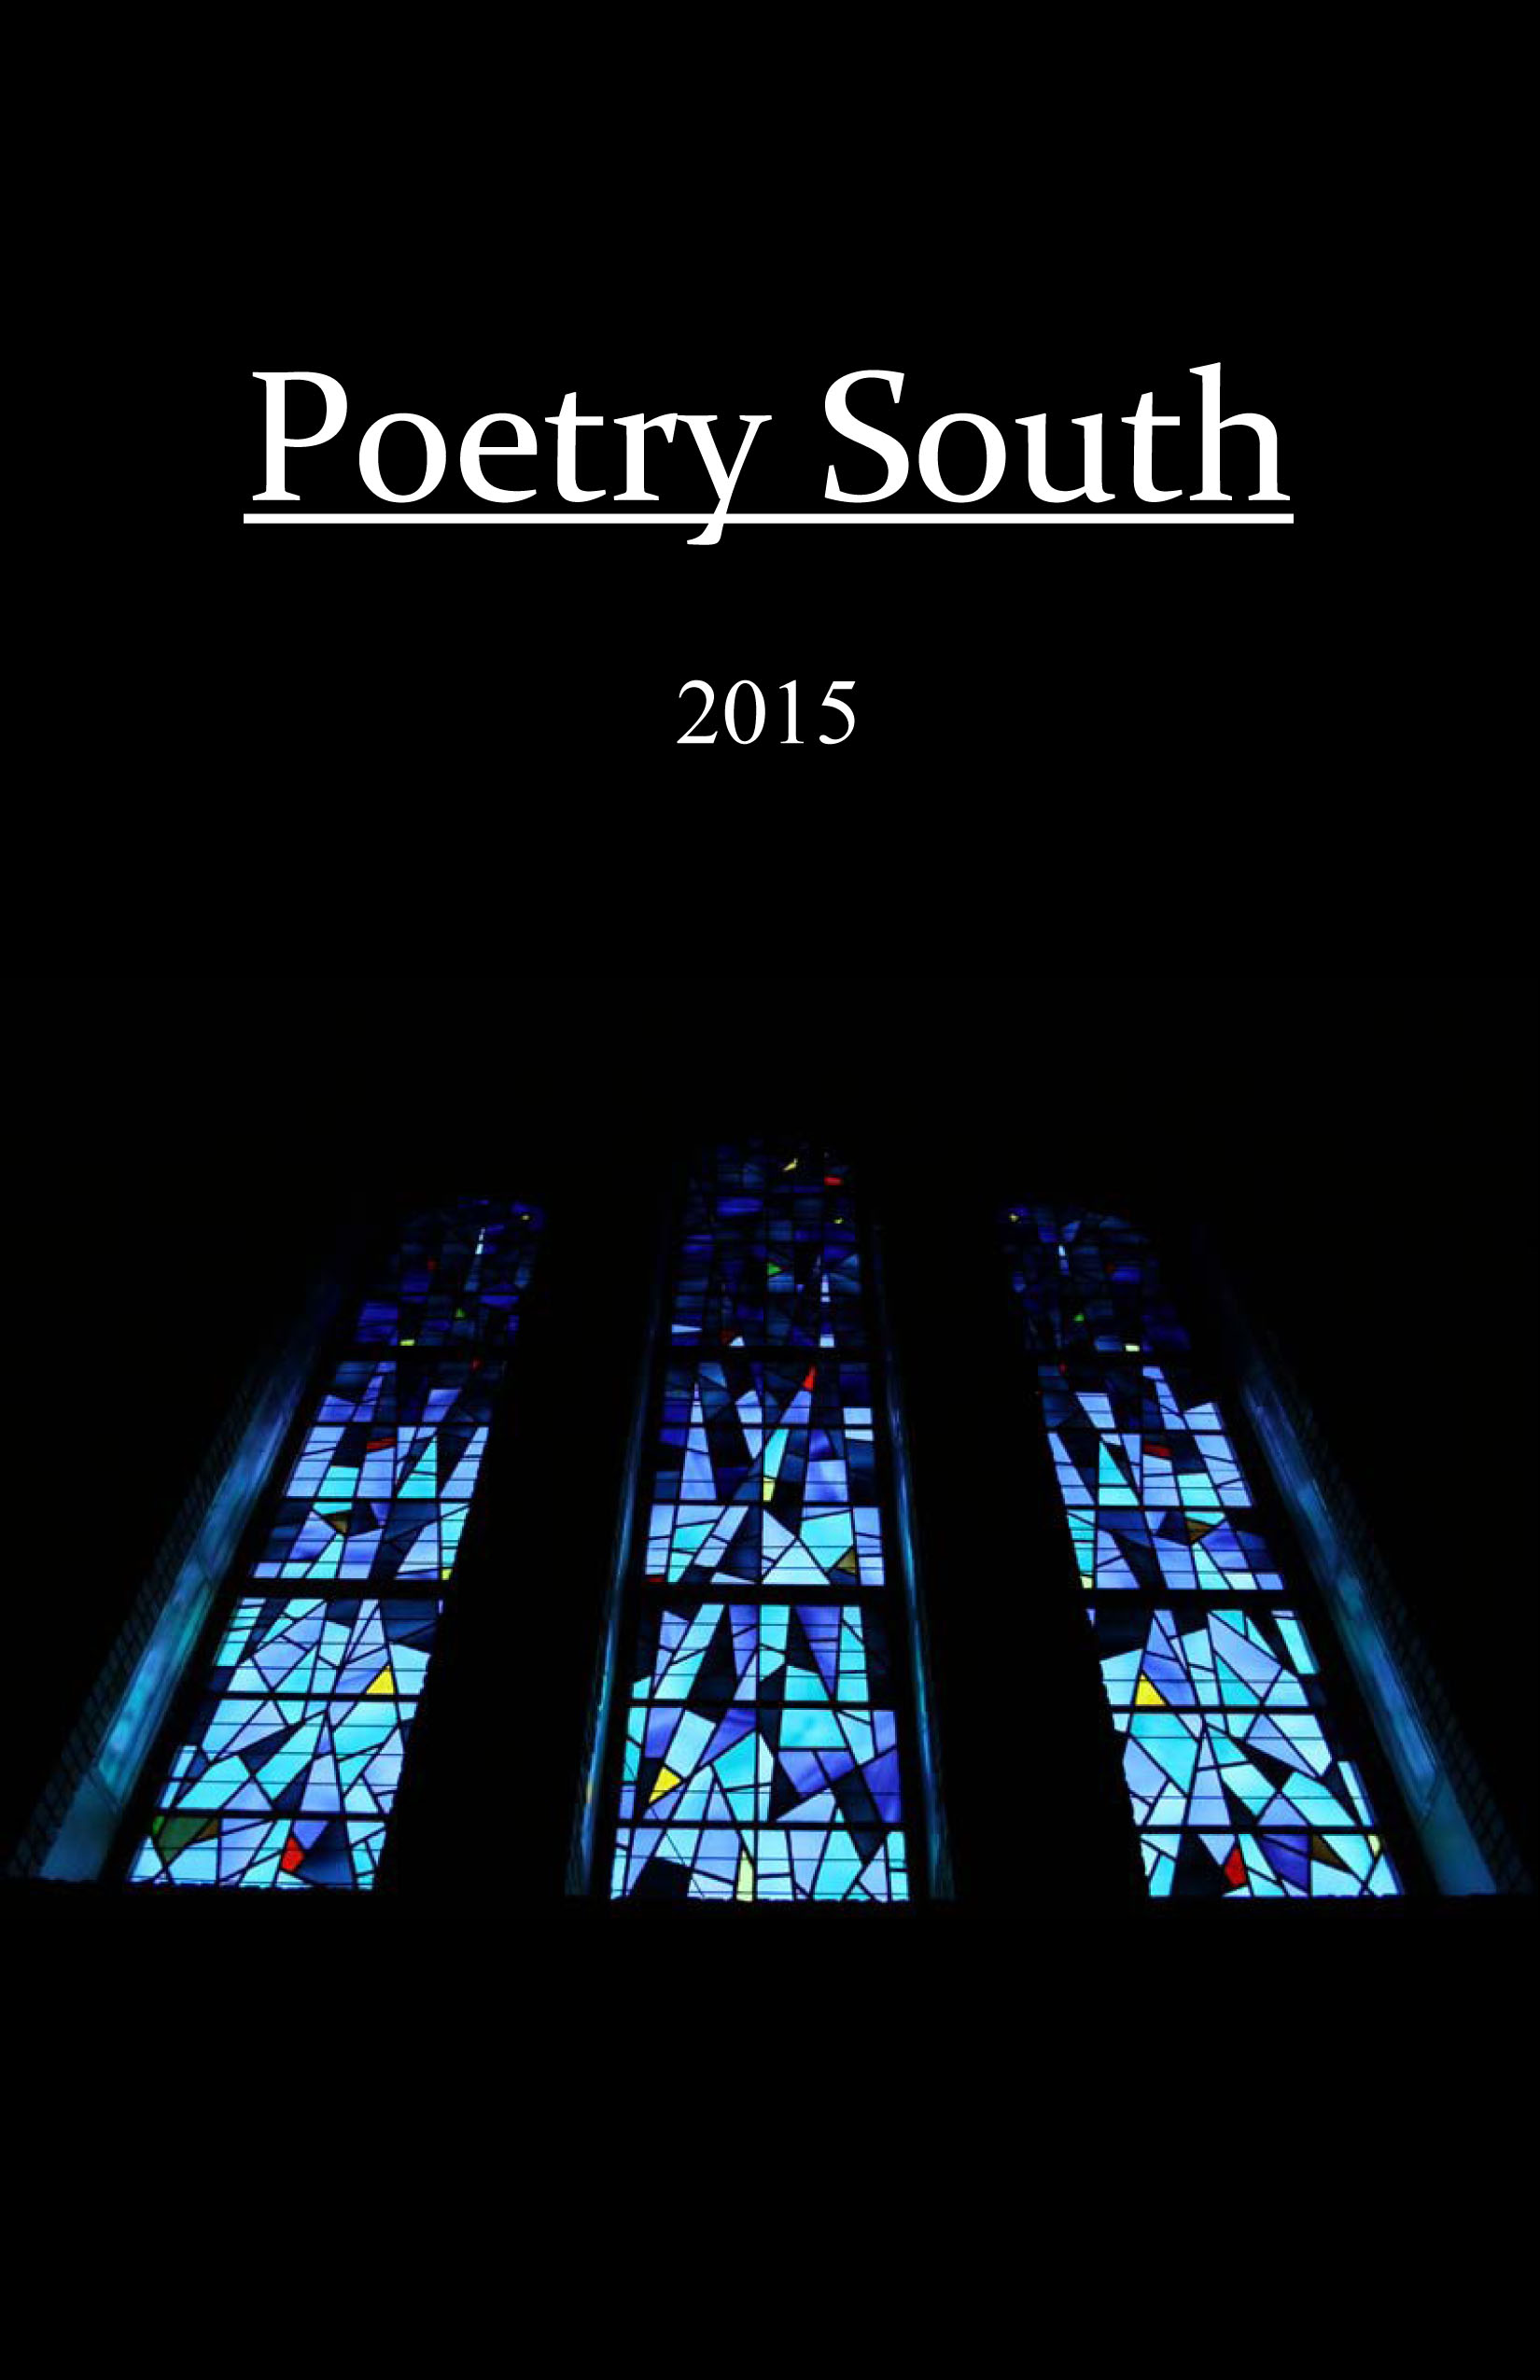 Poetry South 2015 FrontCover